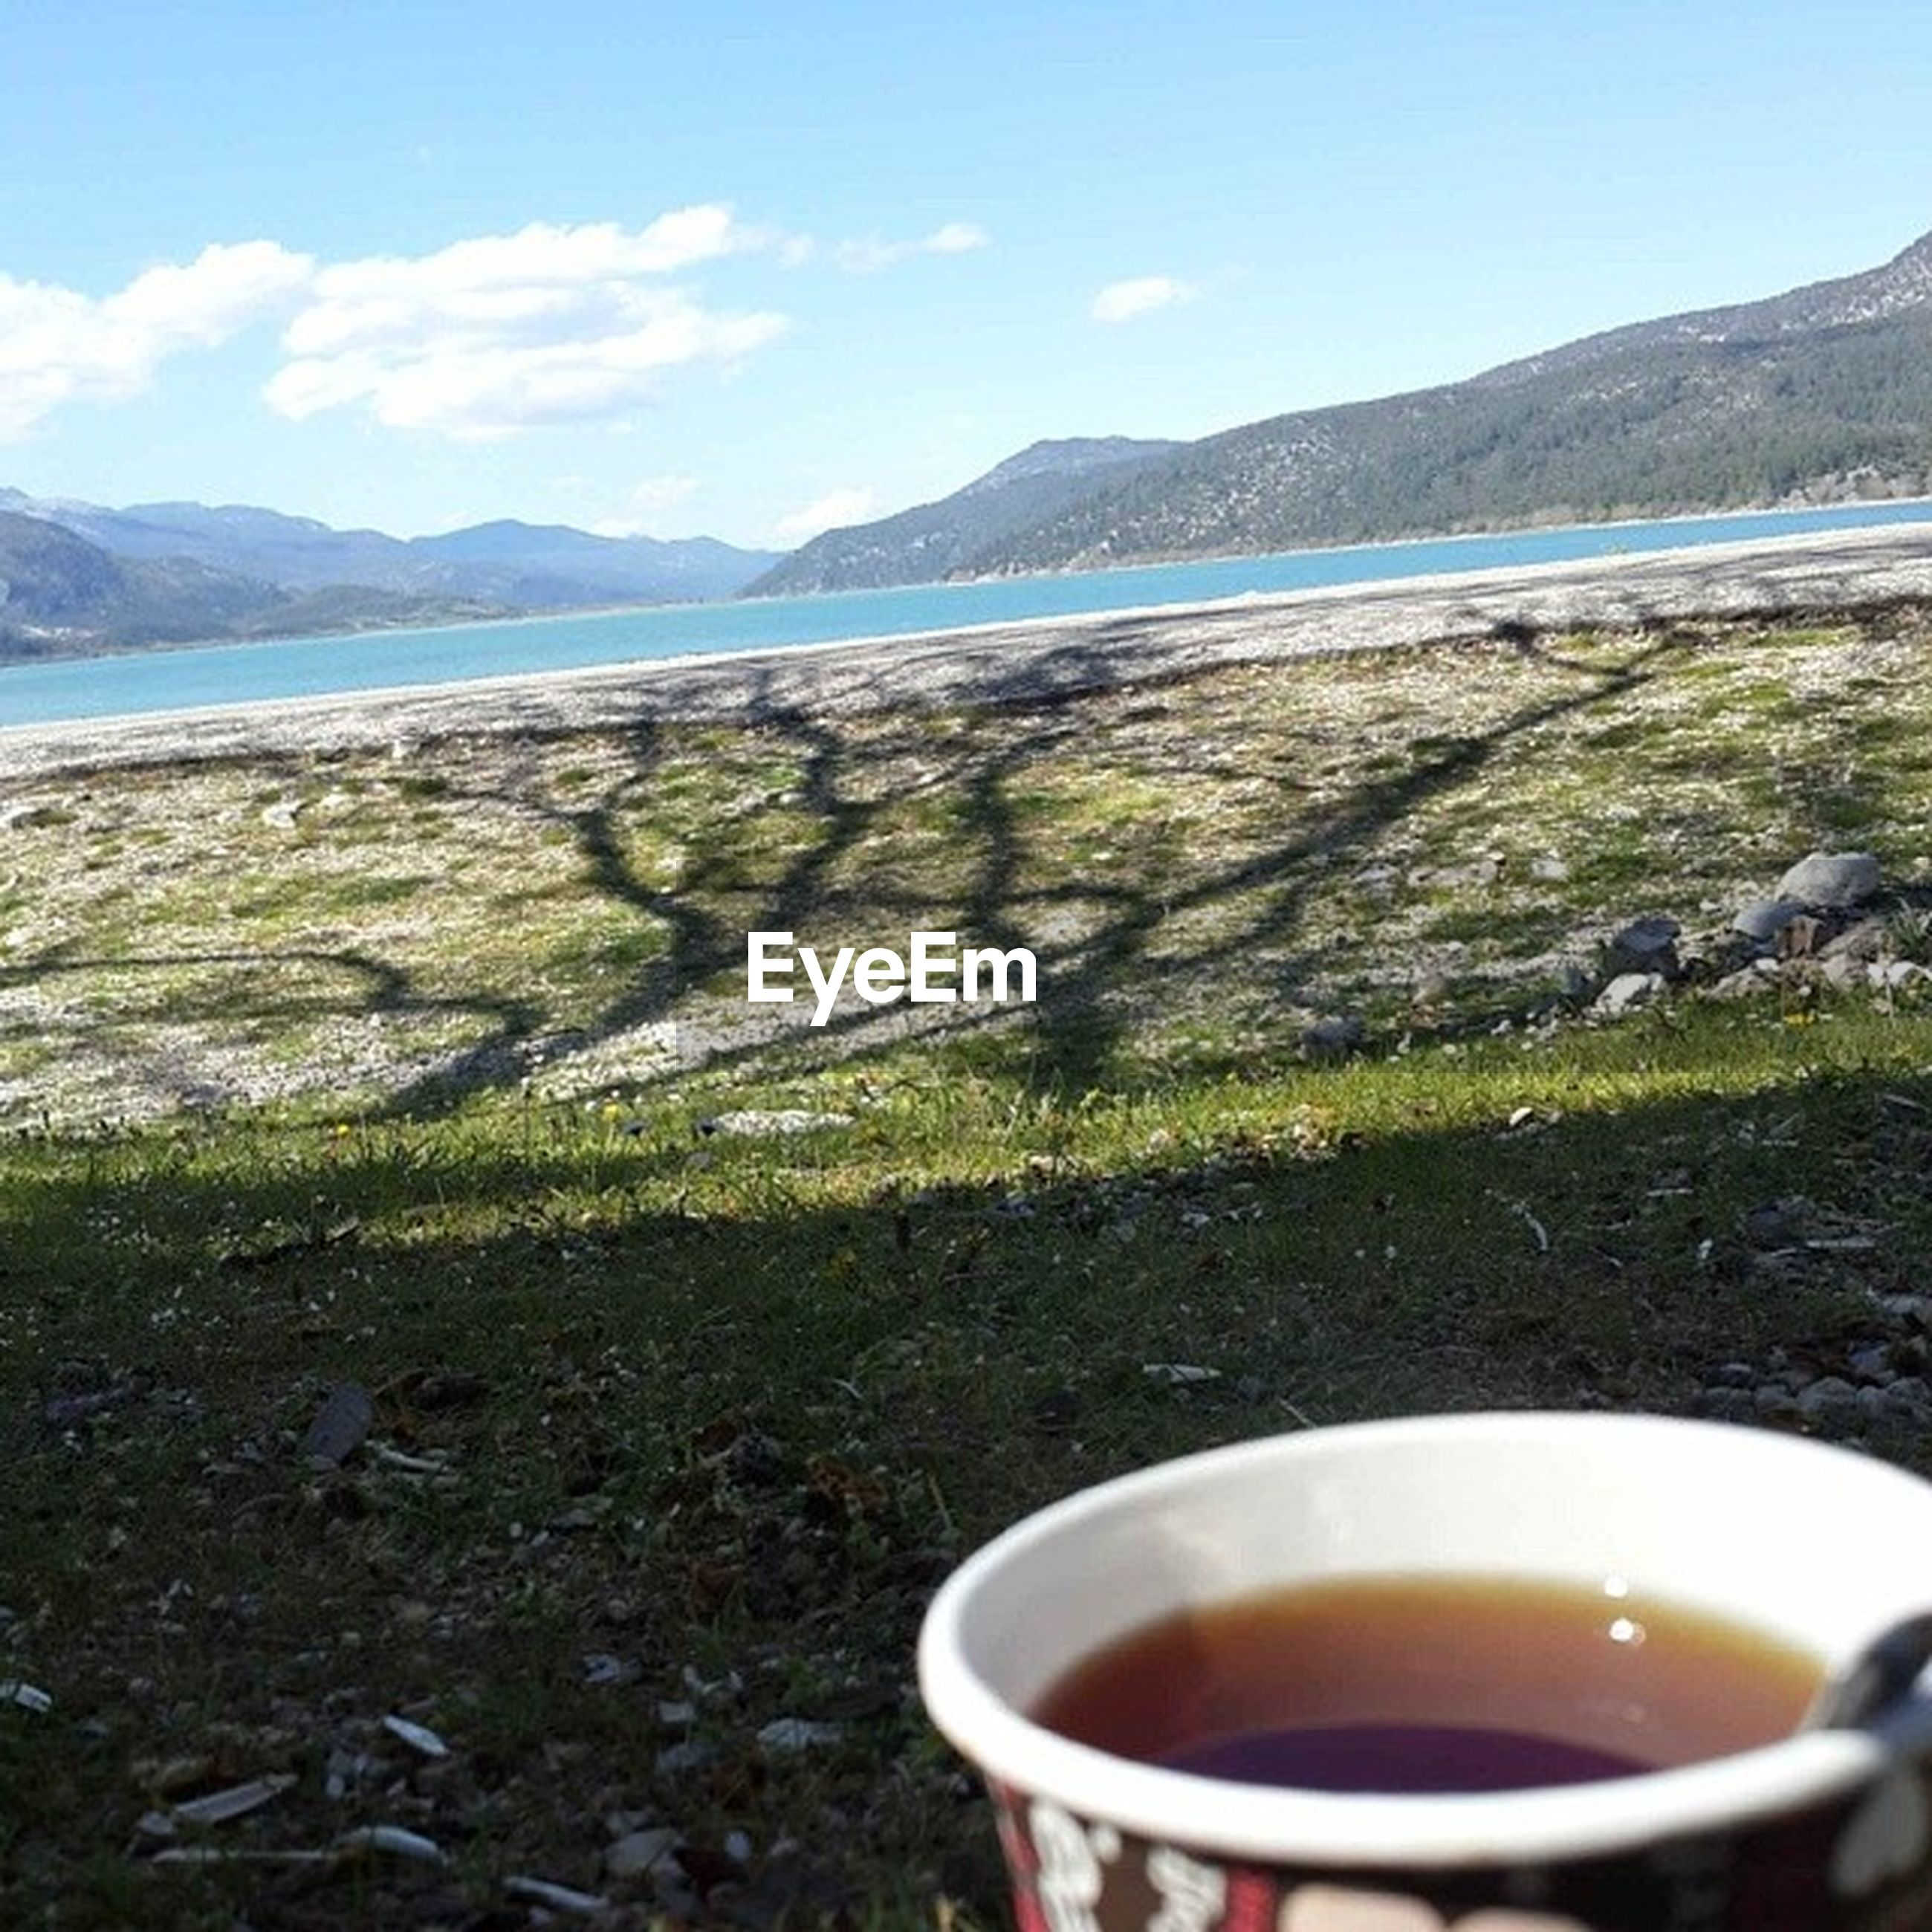 mountain, sky, tranquil scene, tranquility, drink, scenics, food and drink, beauty in nature, coffee cup, landscape, mountain range, nature, refreshment, close-up, water, table, cloud, day, idyllic, no people